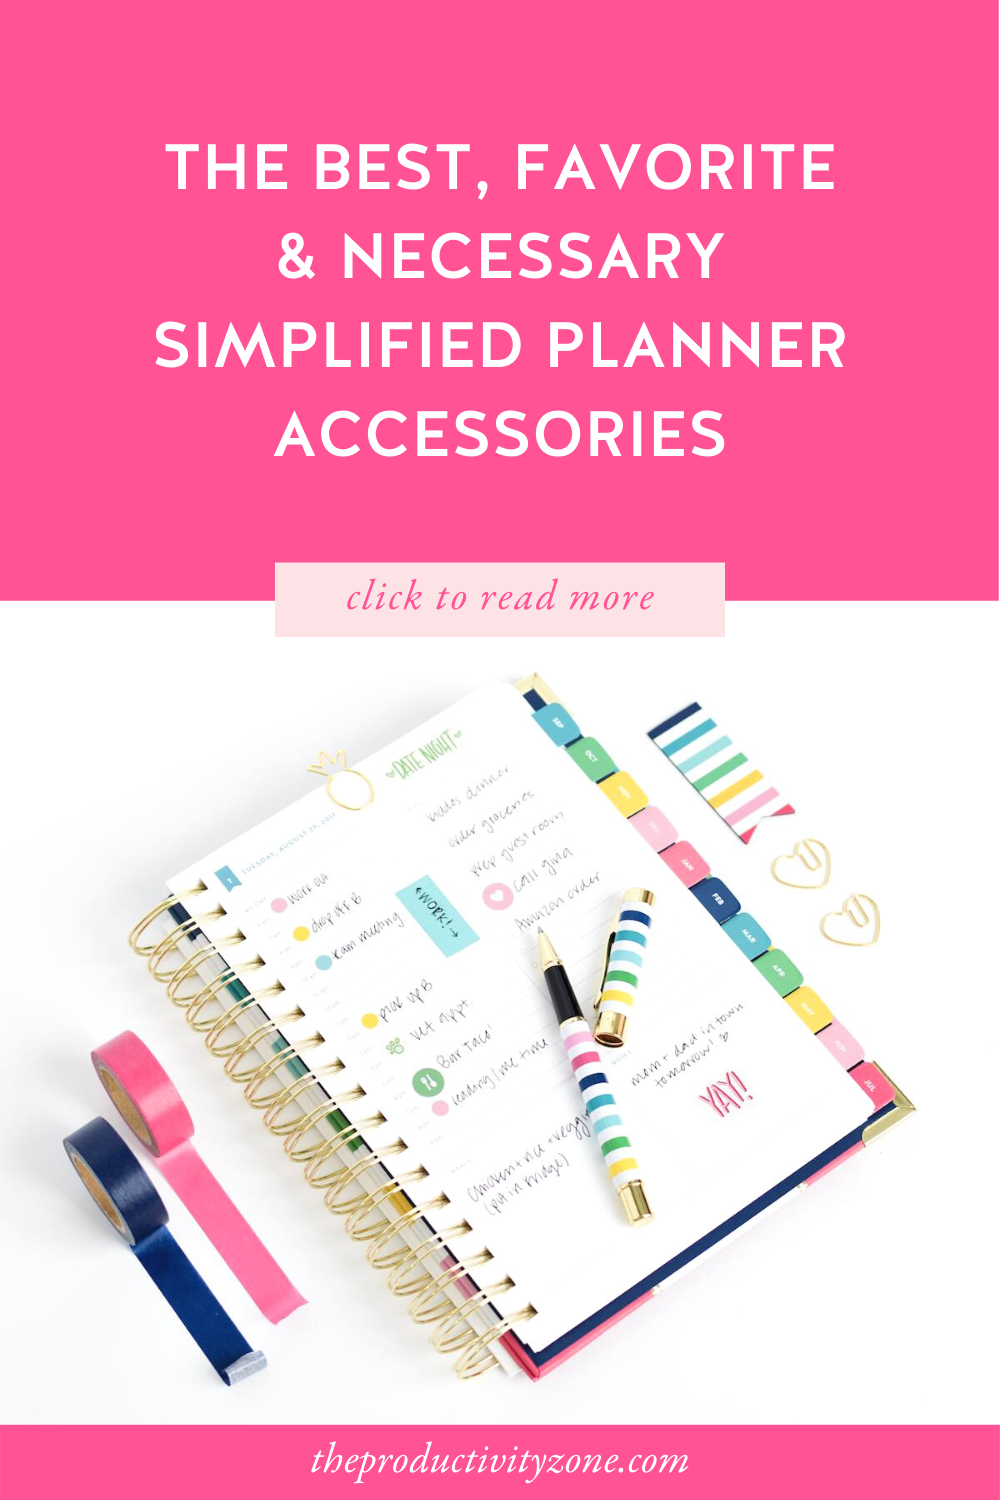 Simplified Planner folded over to show off a daily page using colorful planner accessories